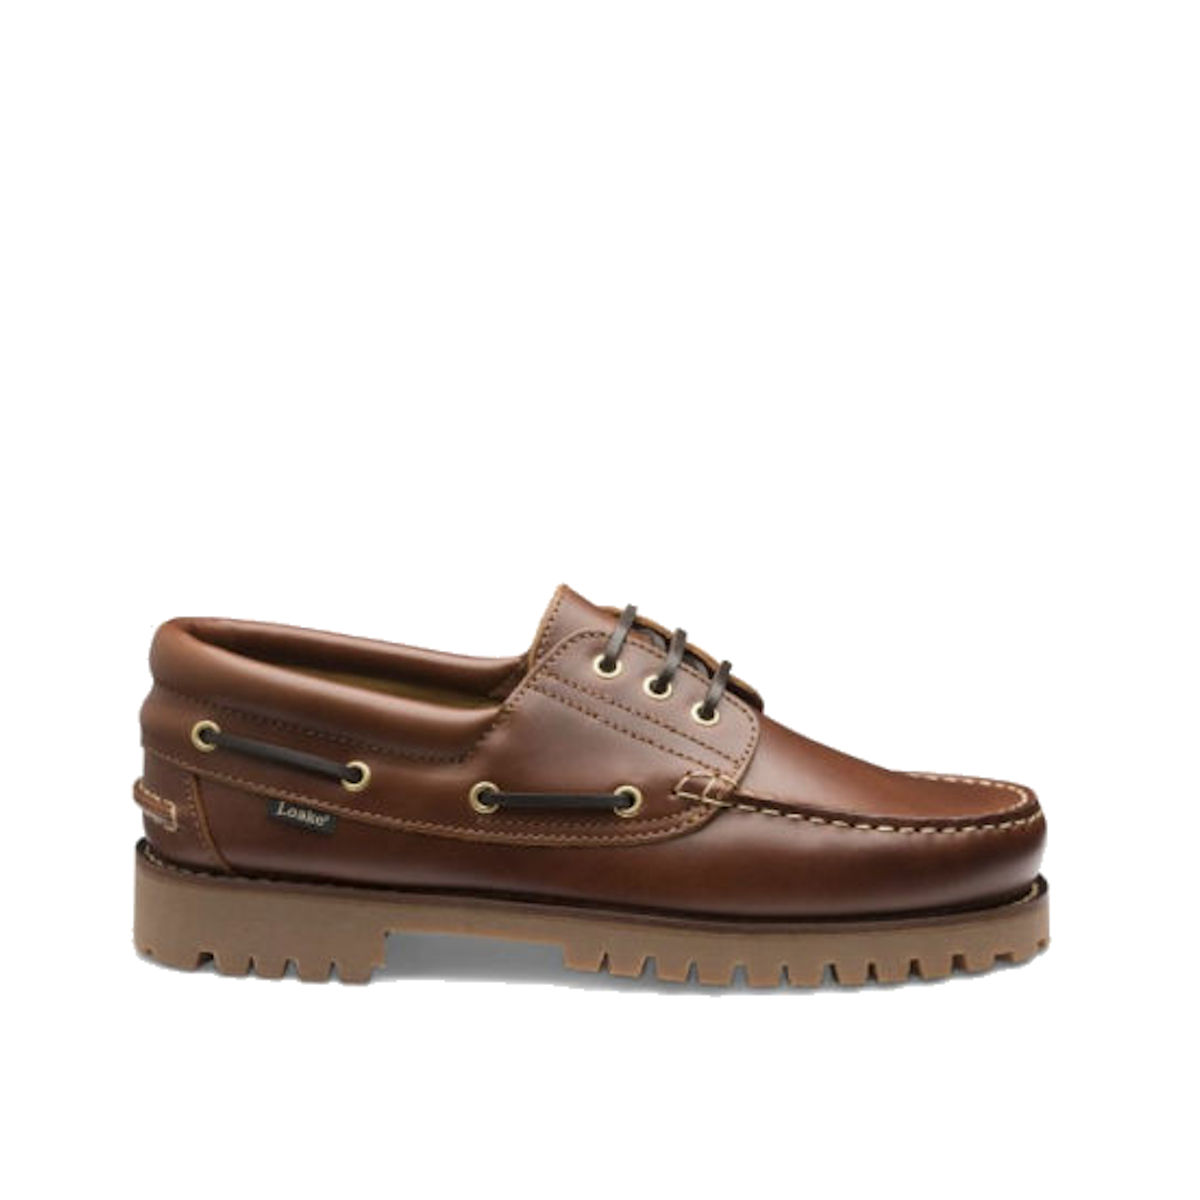 Loake 522 CH - Mens Brown Deck Shoes